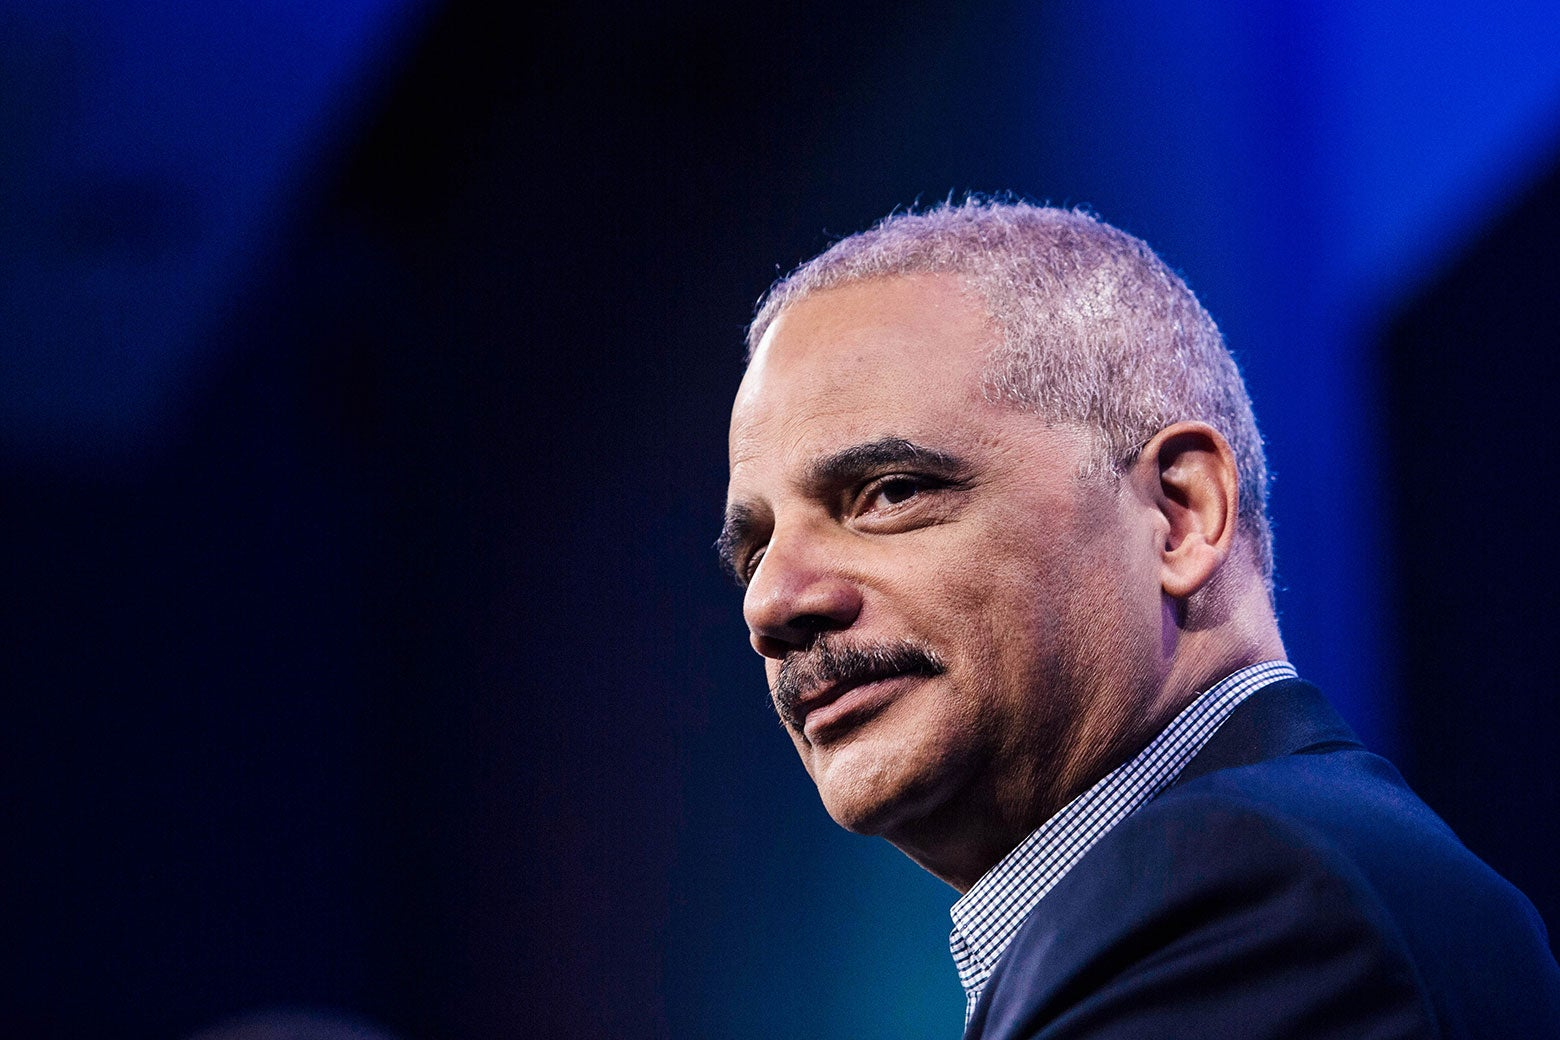 Former Attorney General Eric Holder speaks during an interview at the Washington Post on Feb. 27 in Washington.